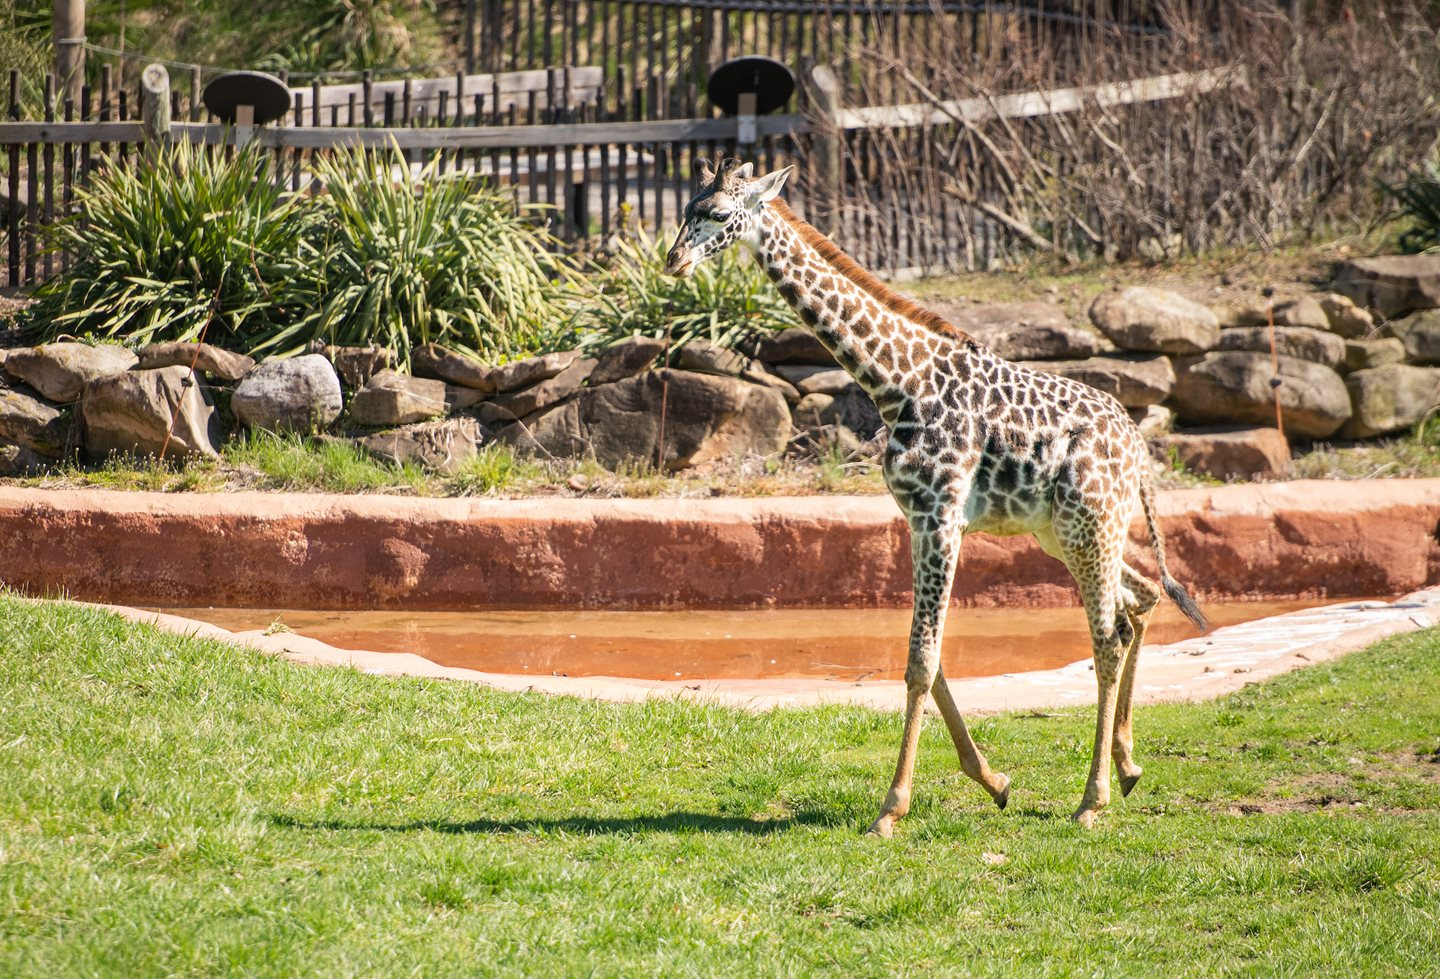 Cleveland Metroparks Zoo to Reopen June 17